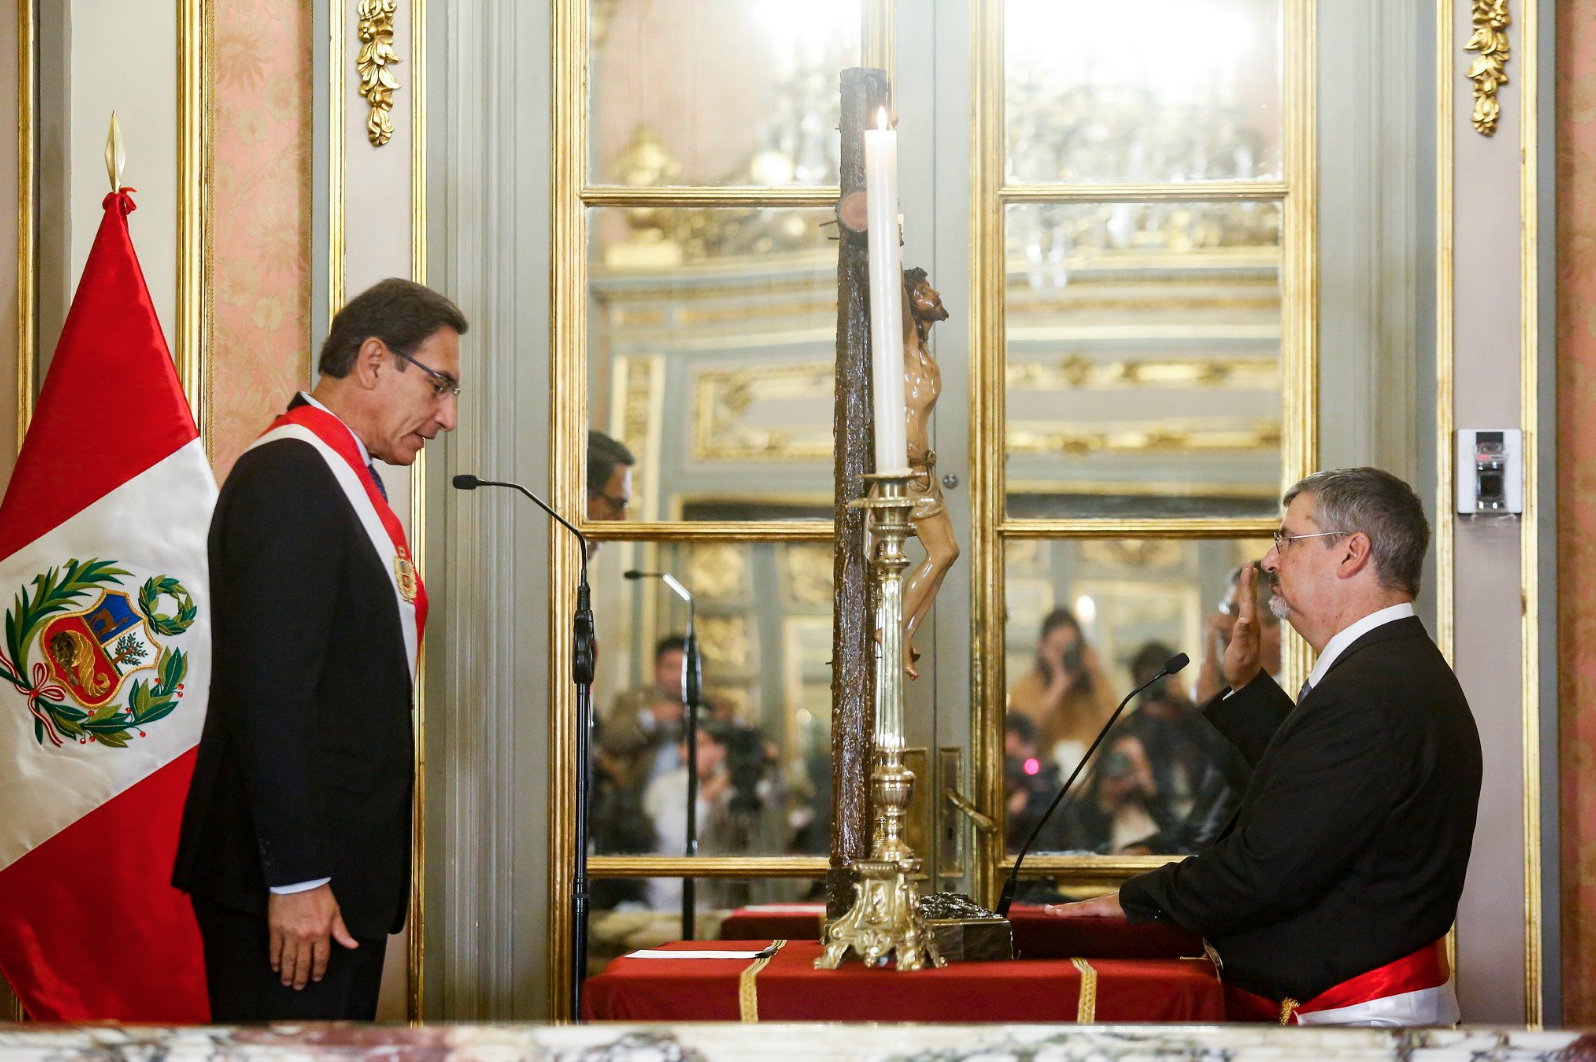 Luis Jaime Castillo Butters being sworn in as Minister of Culture by the President of Peru on July 8, 2019.